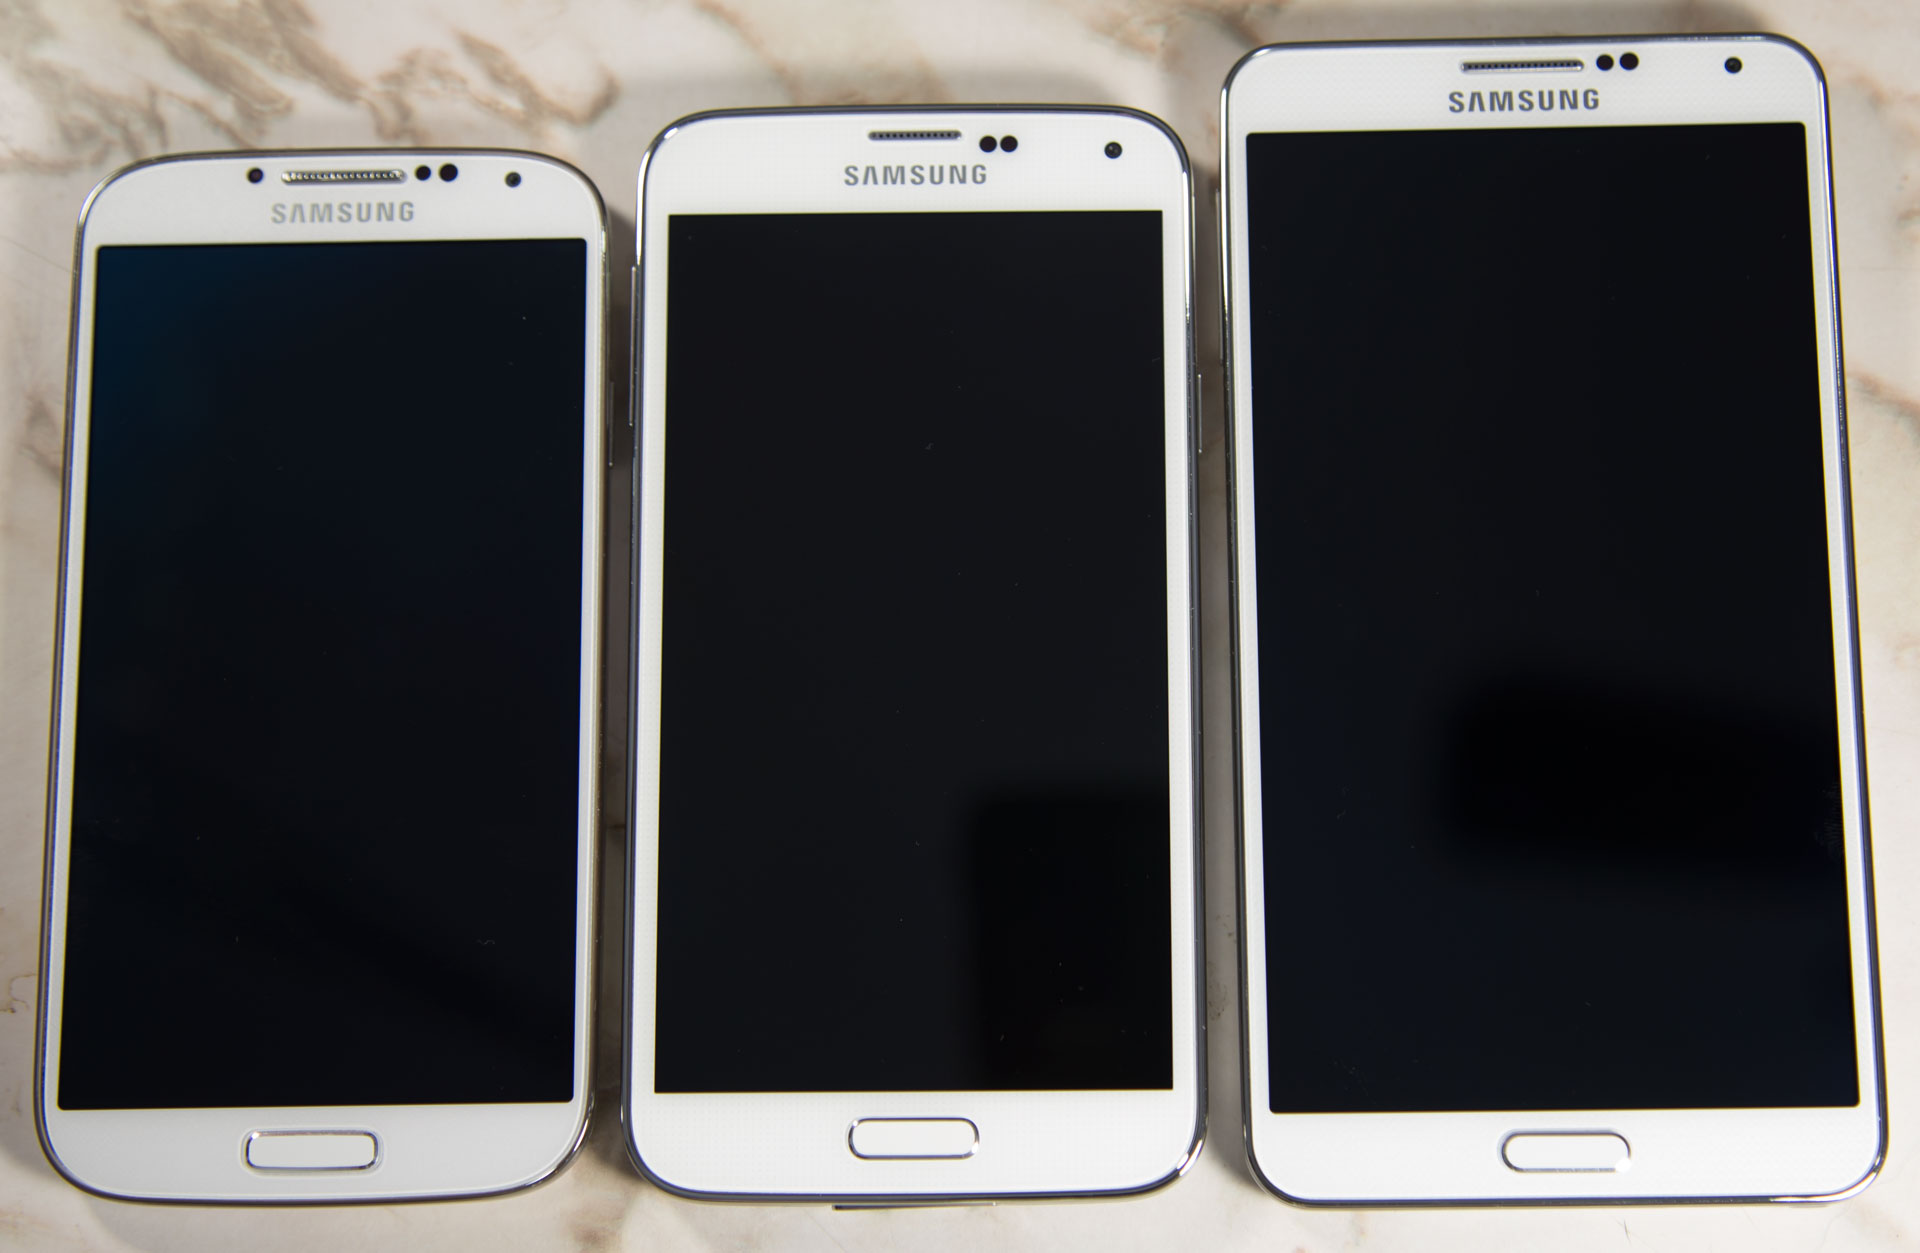 Before reading on, which piece of hardware looks the most modern? Which looks the oldest? The lineup is Galaxy S4, S5, and Note 3.